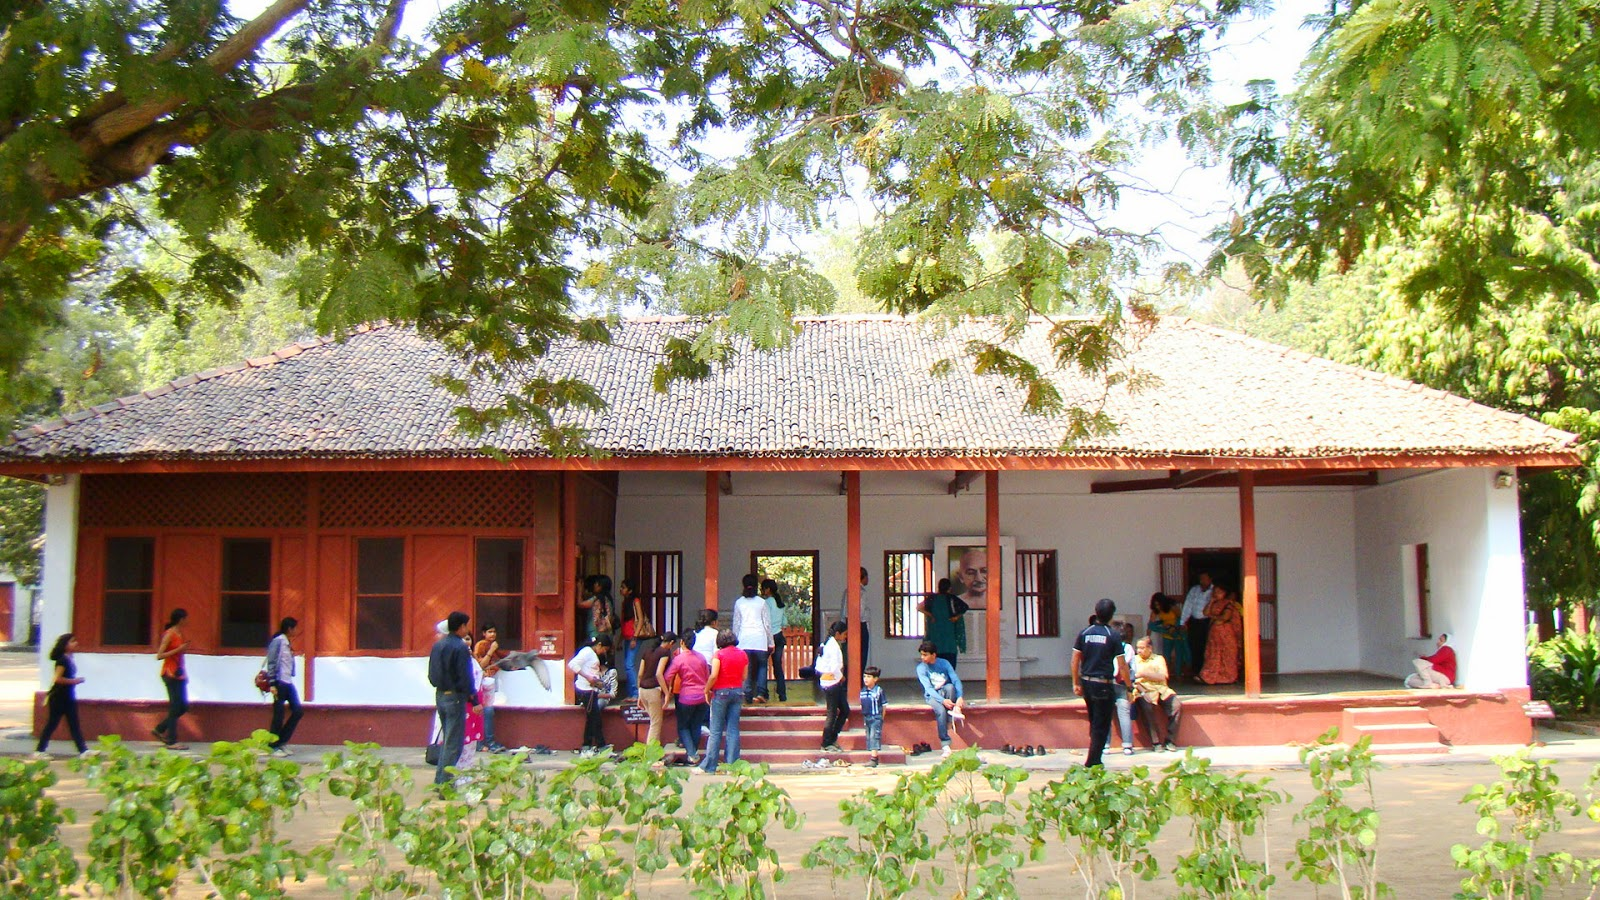 sabarmati ashram essay Welcome to the official website of sabarmati ashram gandhi ashram is located in the sabarmati suburb of ahmedabad, gujarat sabarmati ashram was witness to many historical events that shook up the british empire.